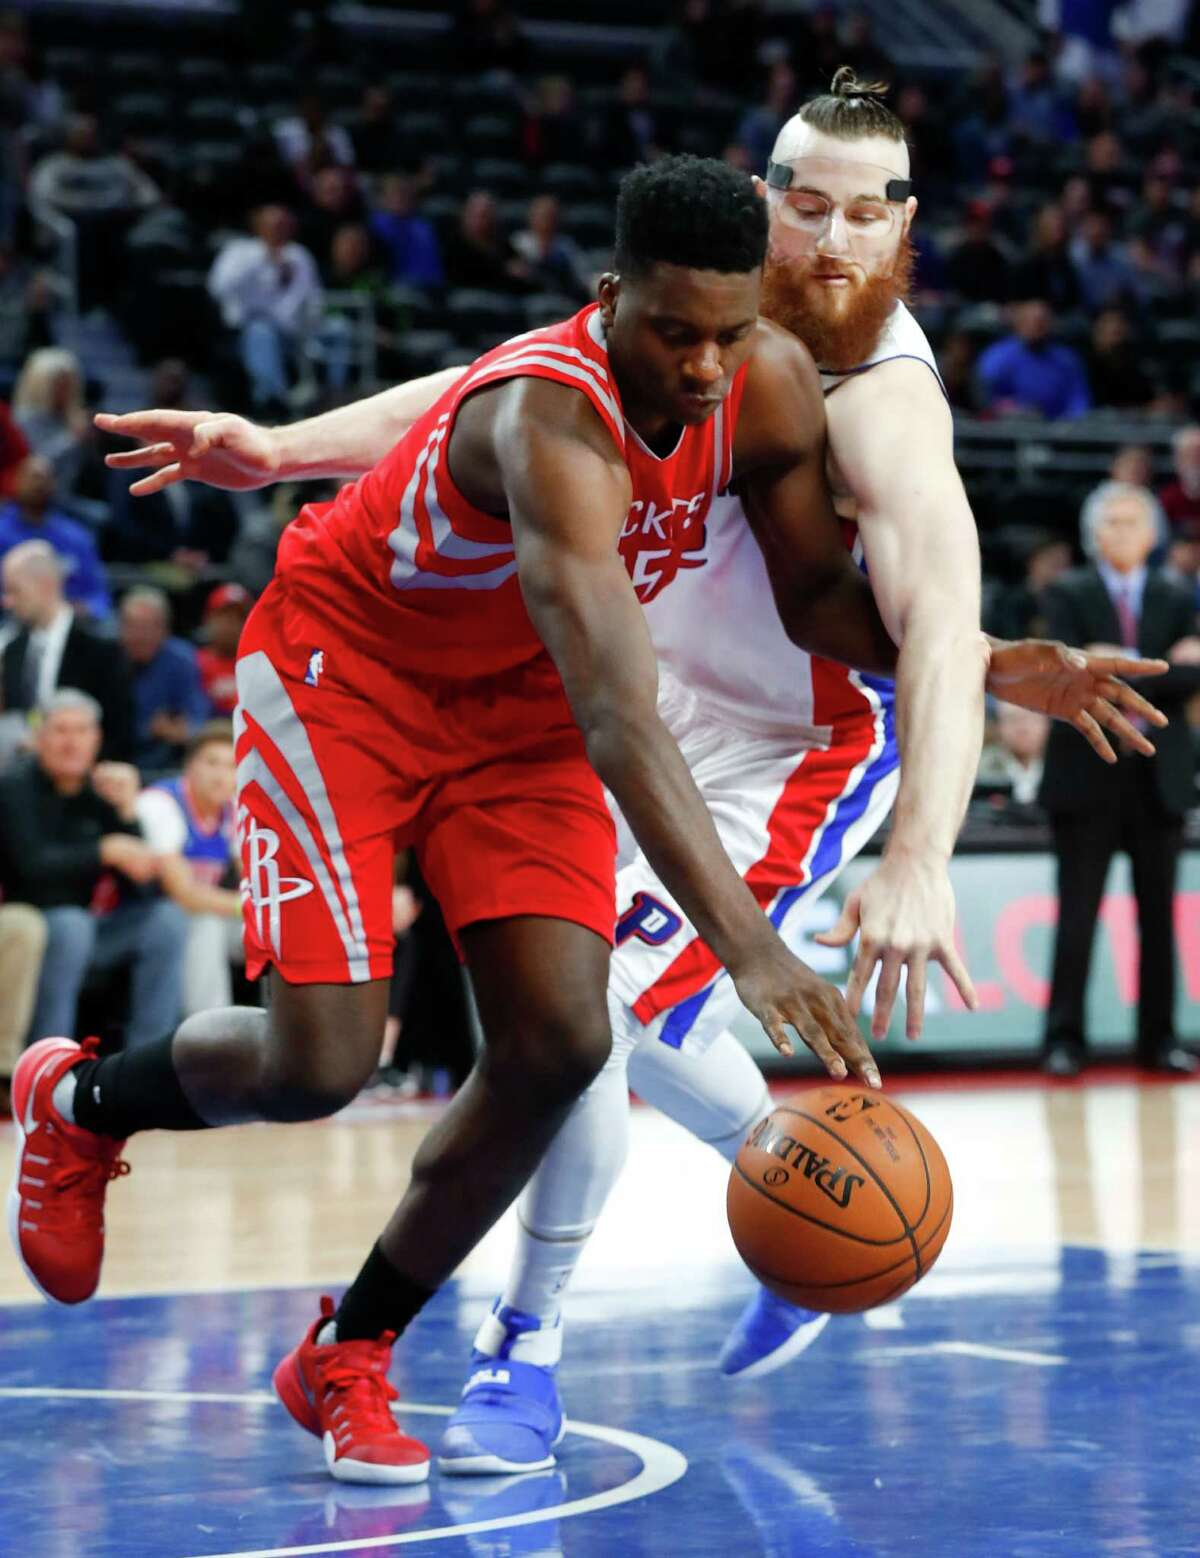 Houston Rockets center Clint Capela (15) and Detroit Pistons center Aron Baynes (12) battle for a loose ball in the second half of an NBA basketball game in Auburn Hills, Mich., Monday, Nov. 21, 2016. (AP Photo/Paul Sancya)